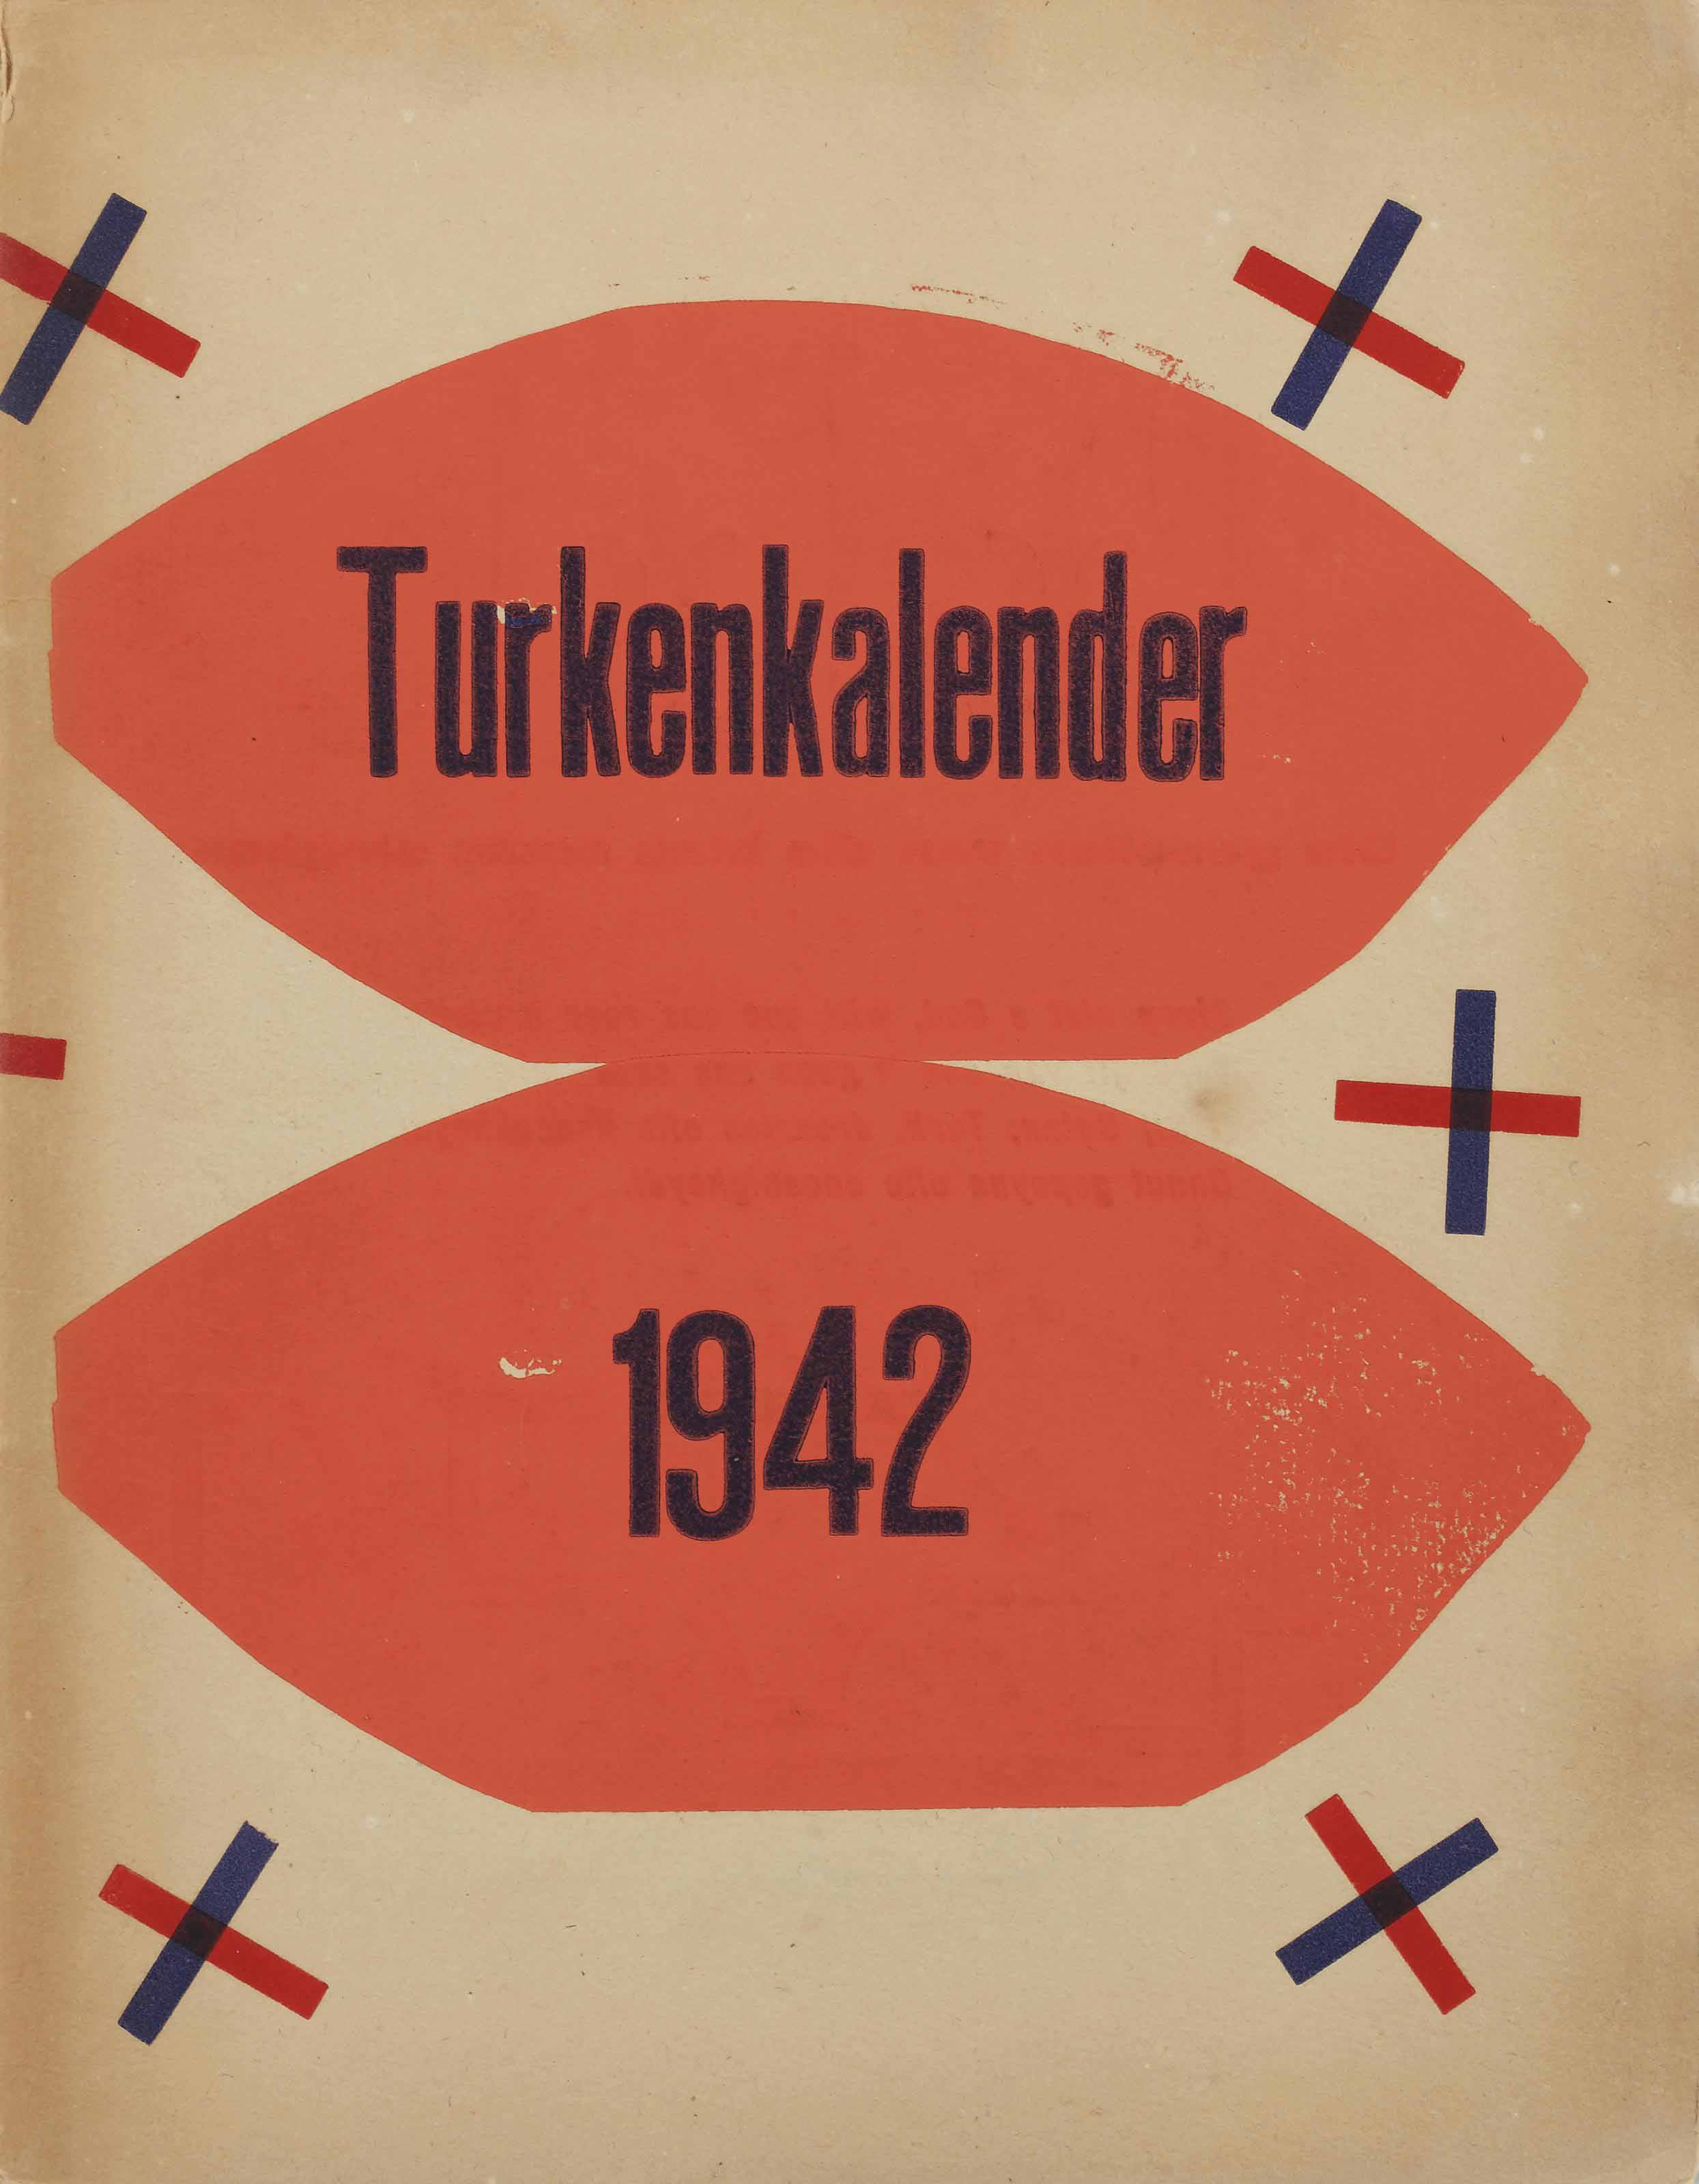 Turkenkalender 1942 and Six other booklets